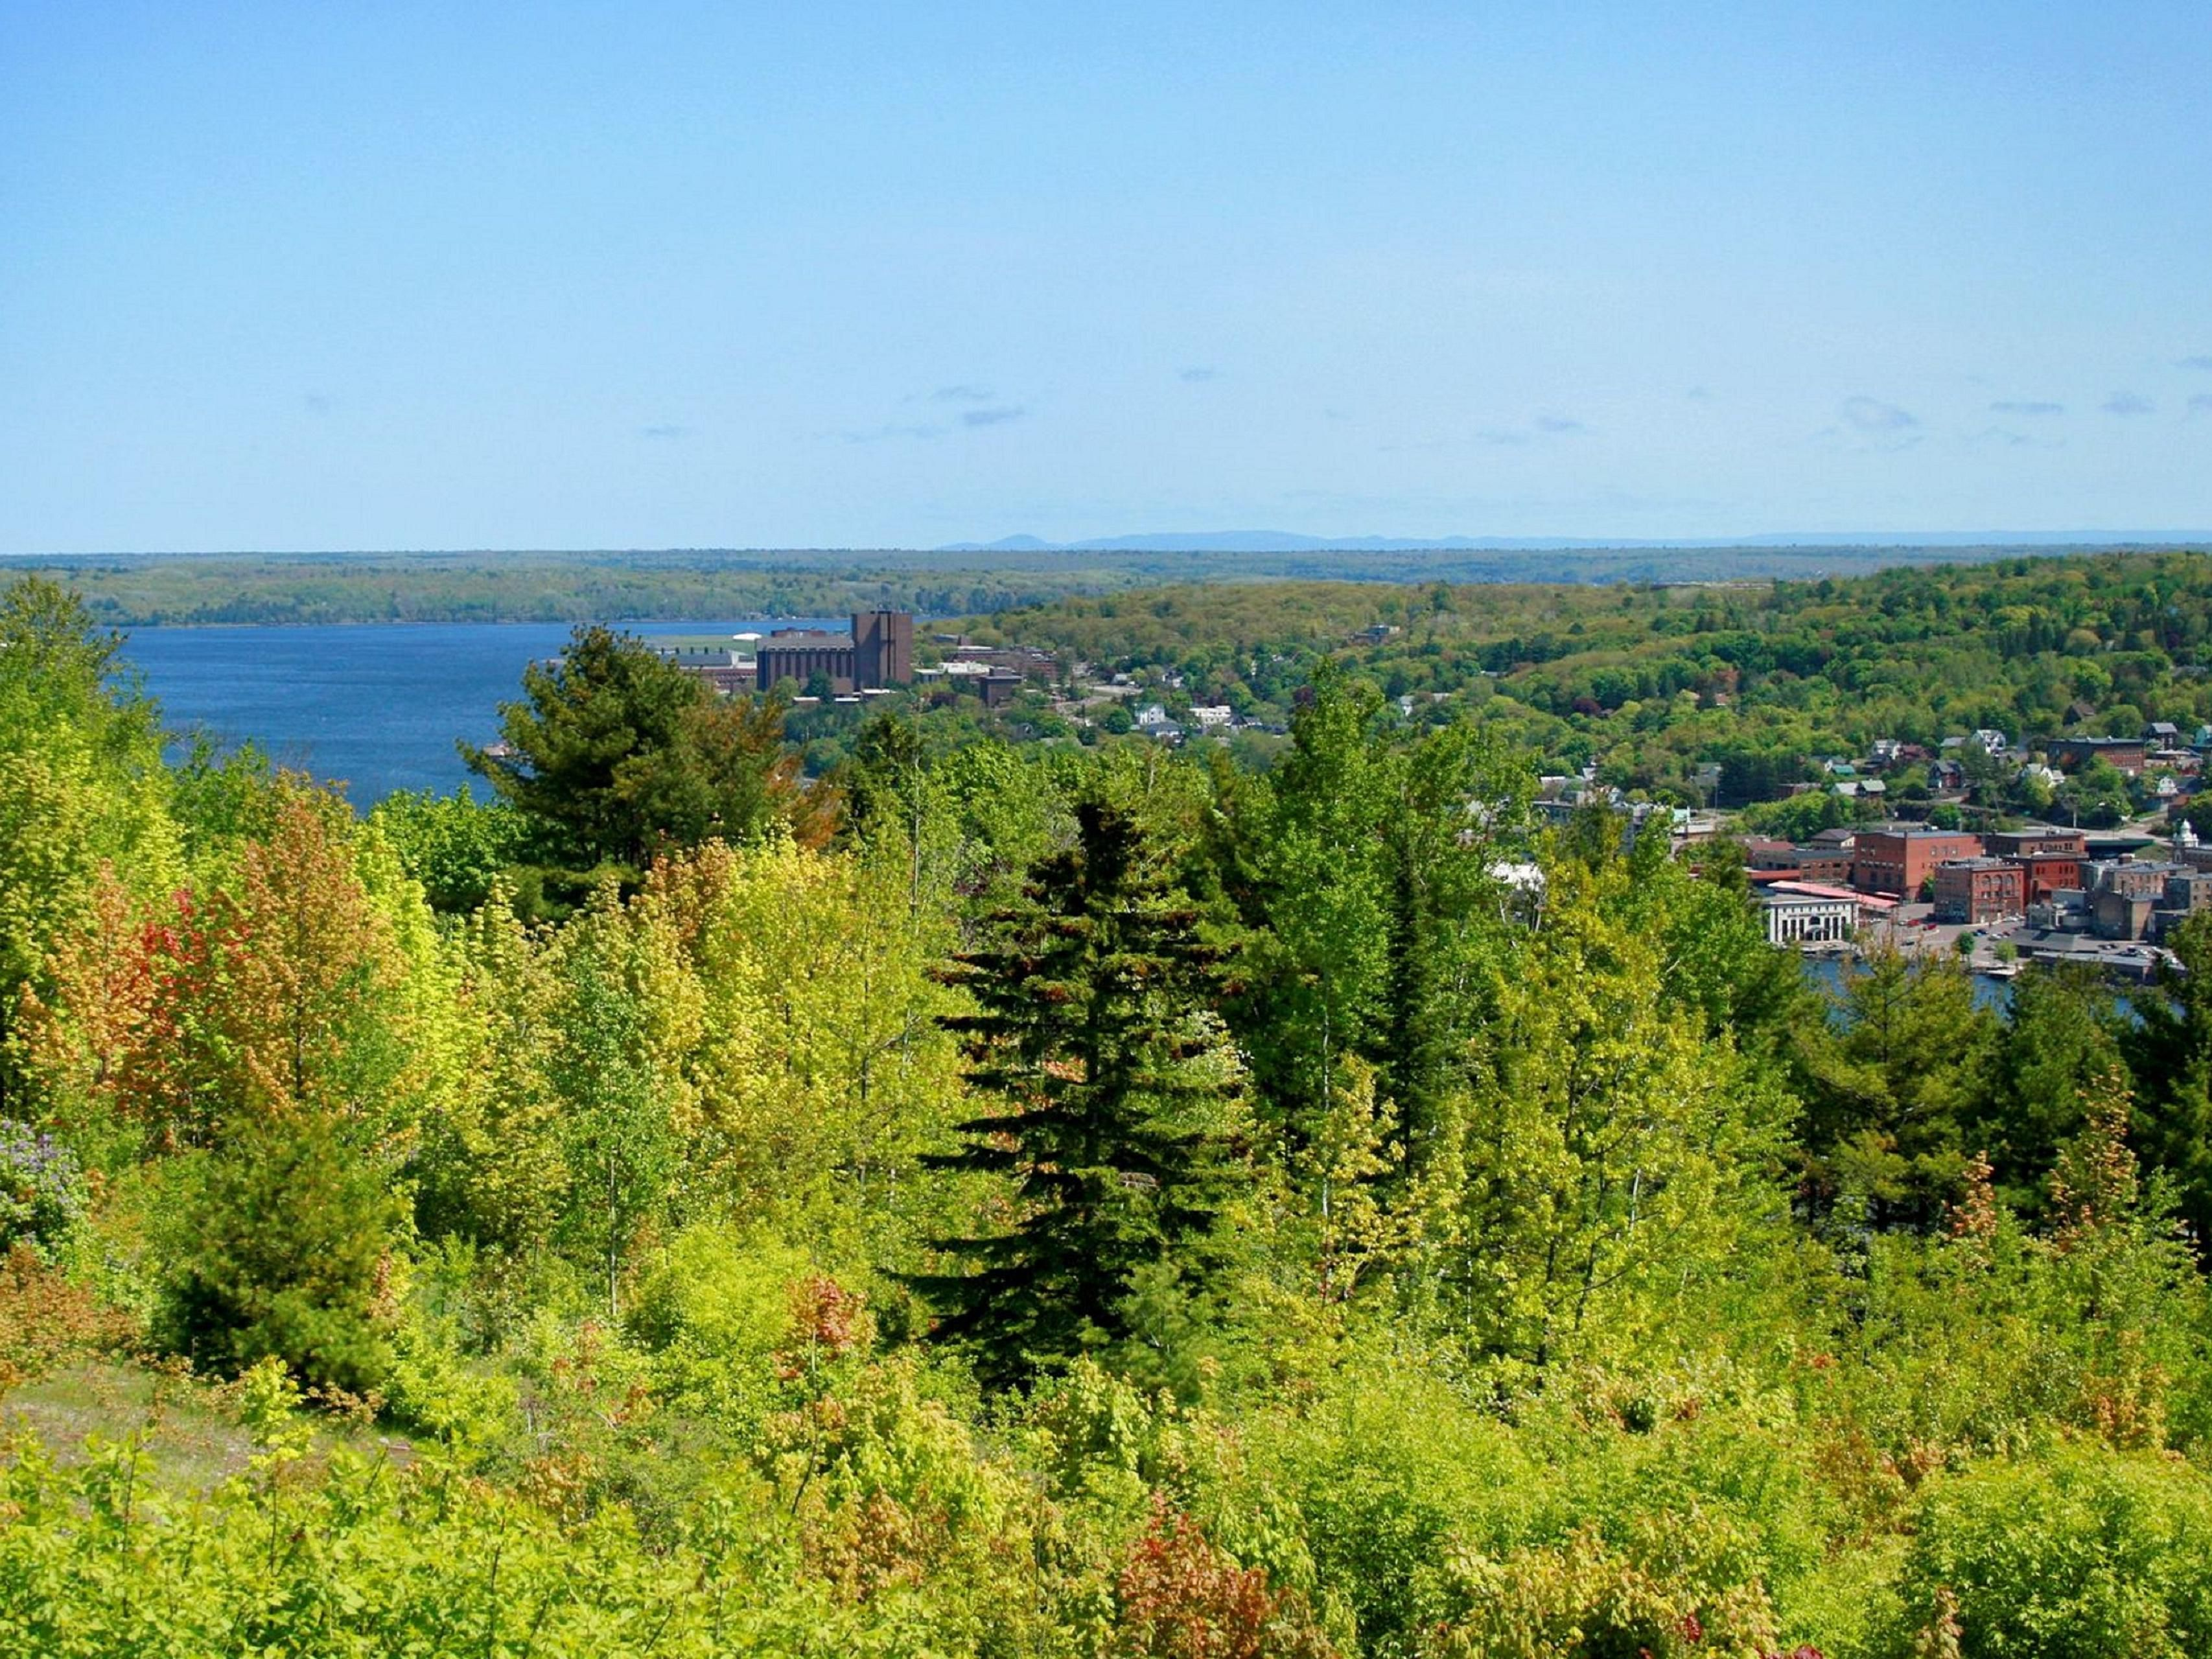 View atop Quincy Hill looking over Portage Lake